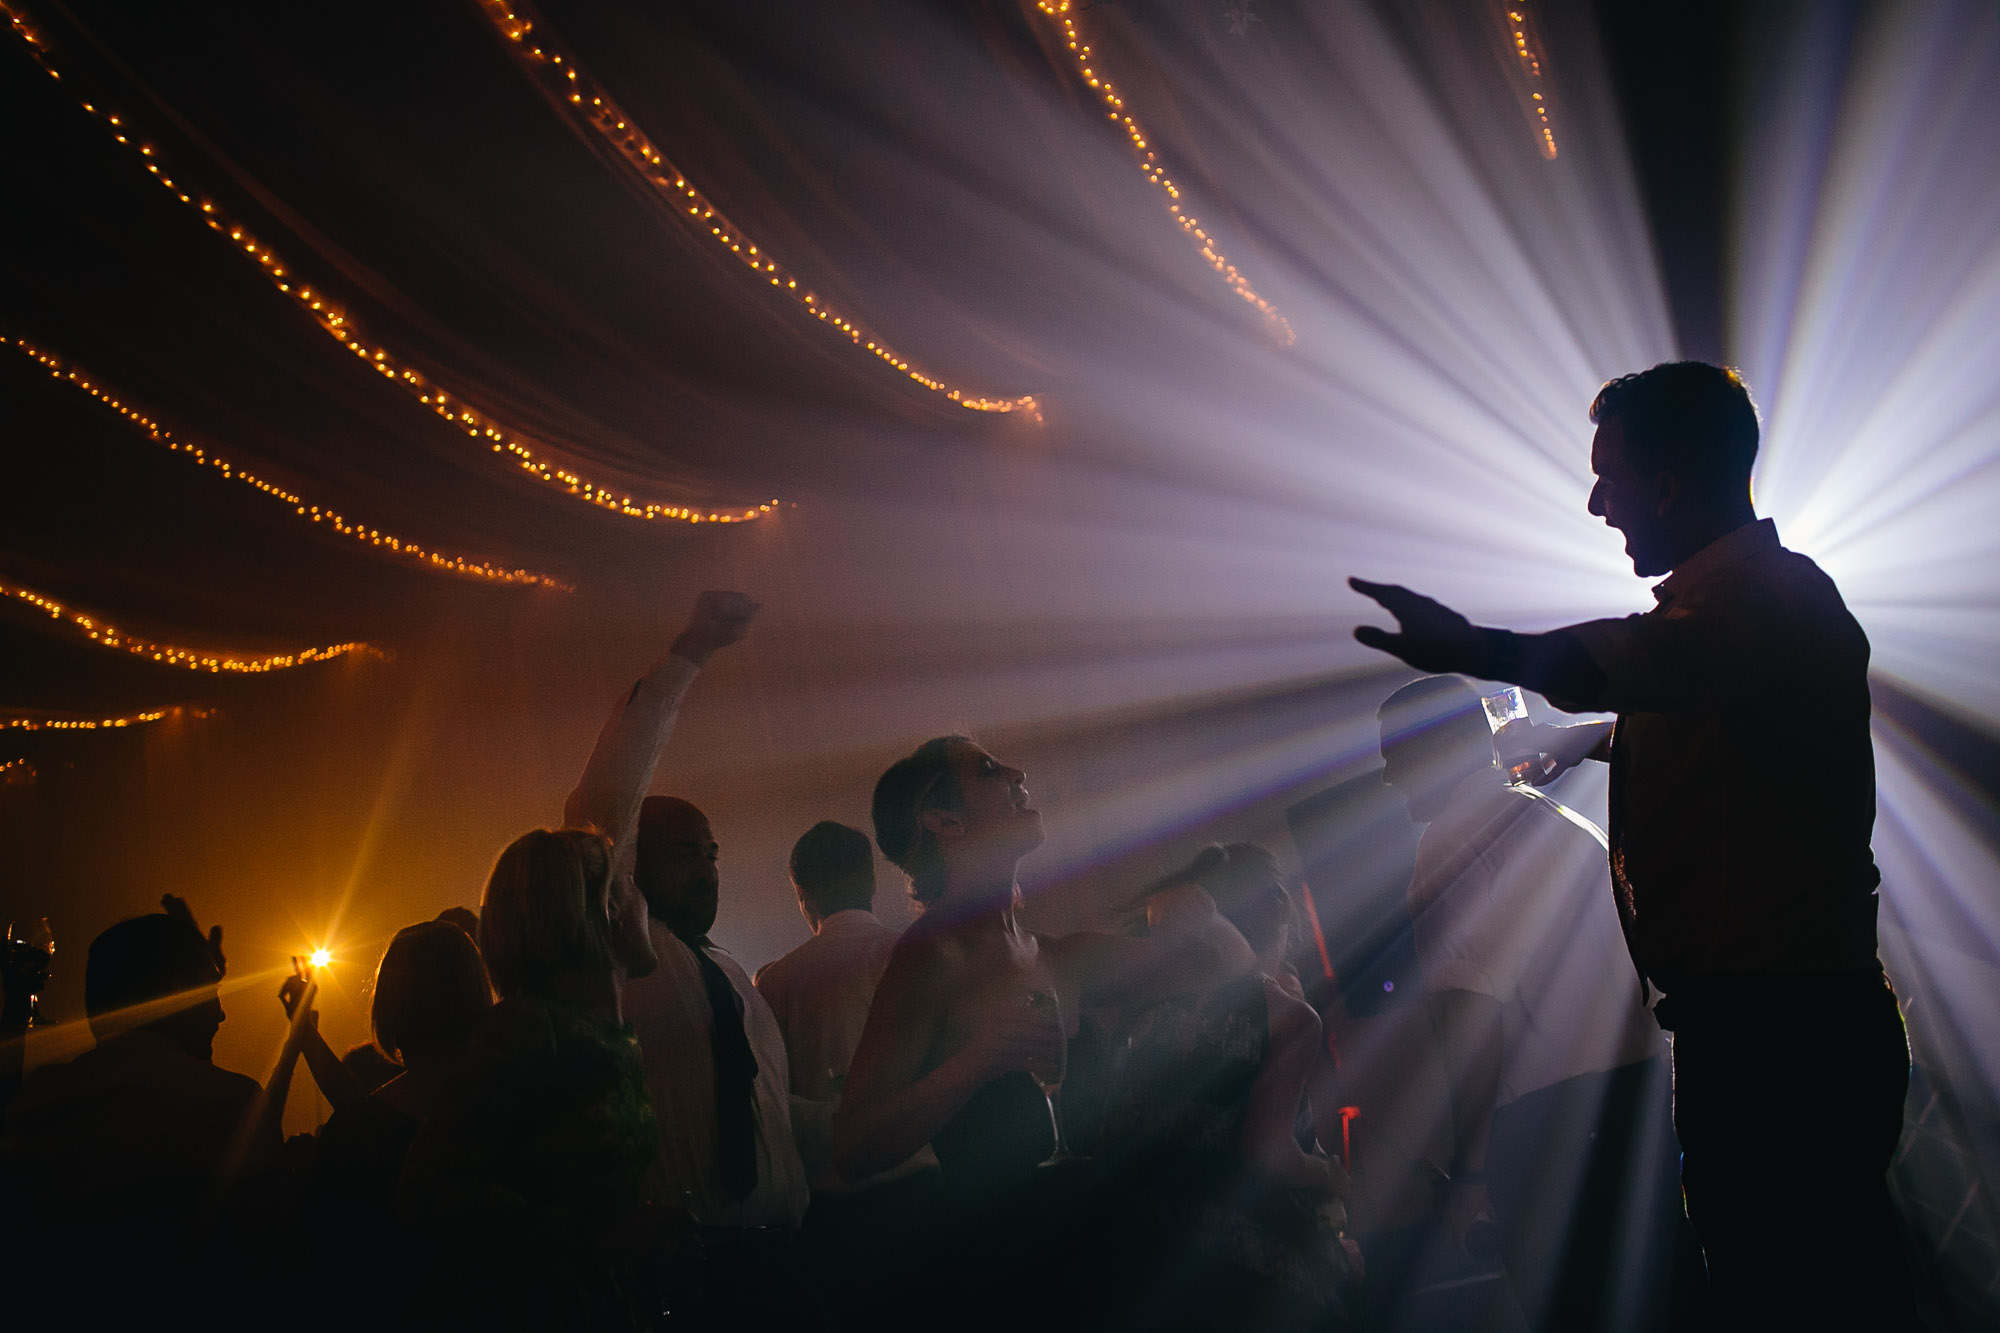 Party moment against spotlight - photo by Caroline's Collective